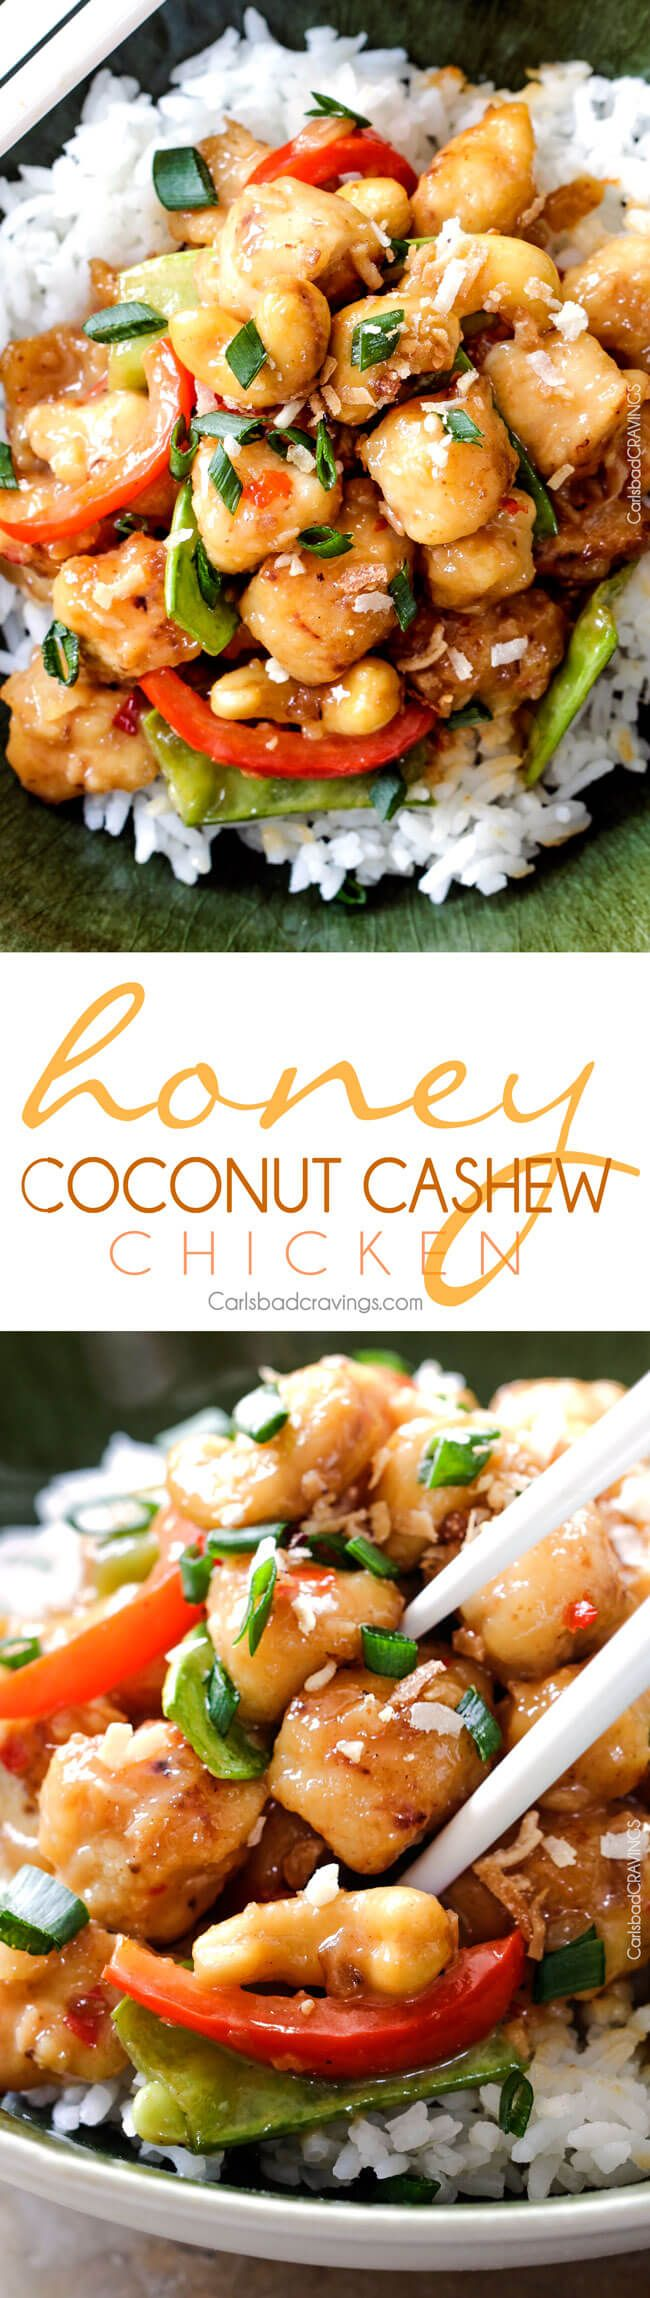 Honey Coconut Cashew Chicken Stir Fry - in your mouth in 35 minutes with most incredible coconut infused sweet and tangy sauce.